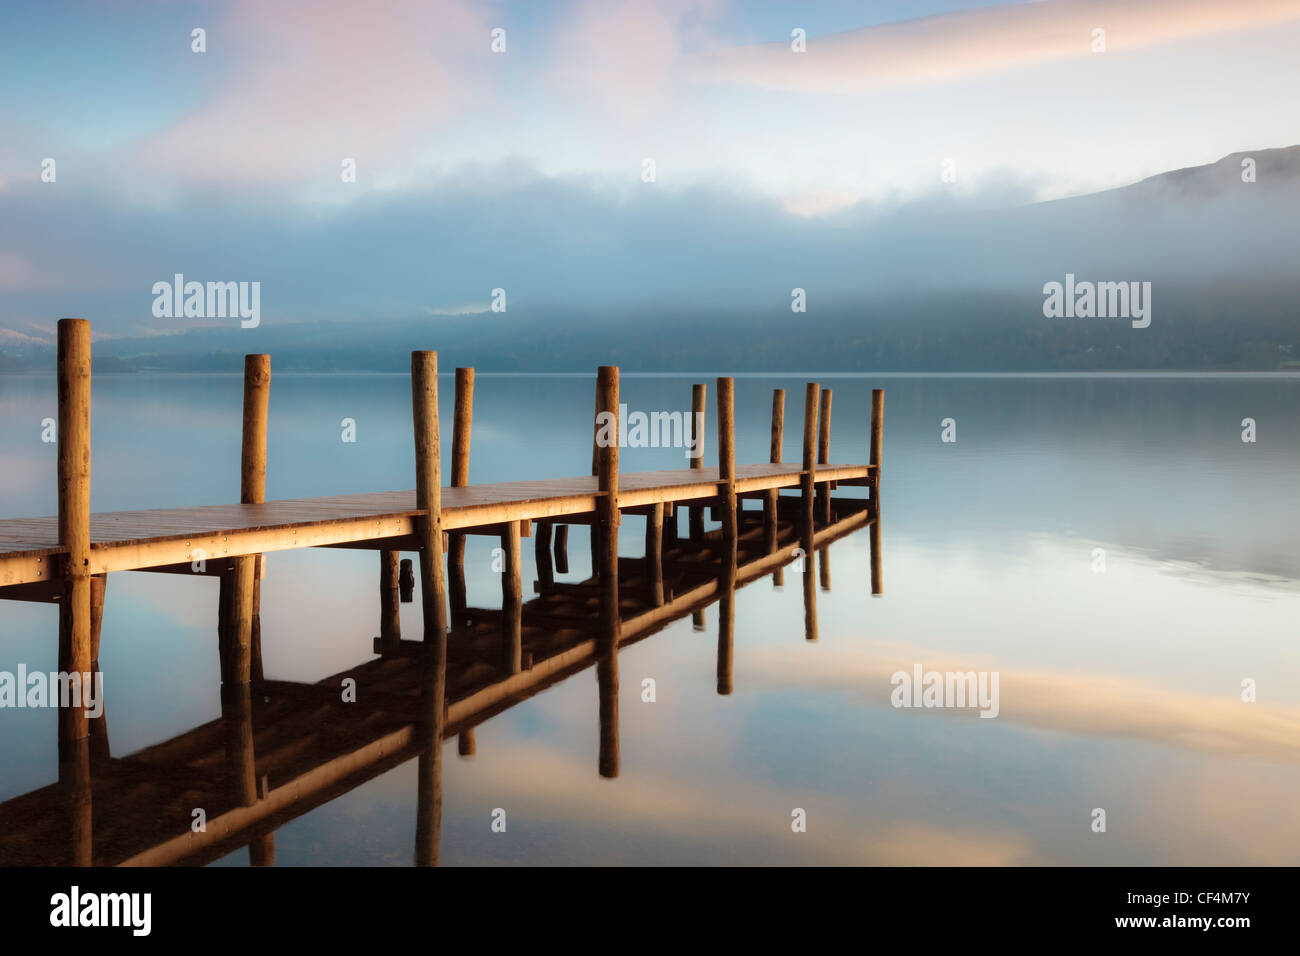 The first rays of sunlight hit the landing jetty at Derwentwater in the Lake District. - Stock Image